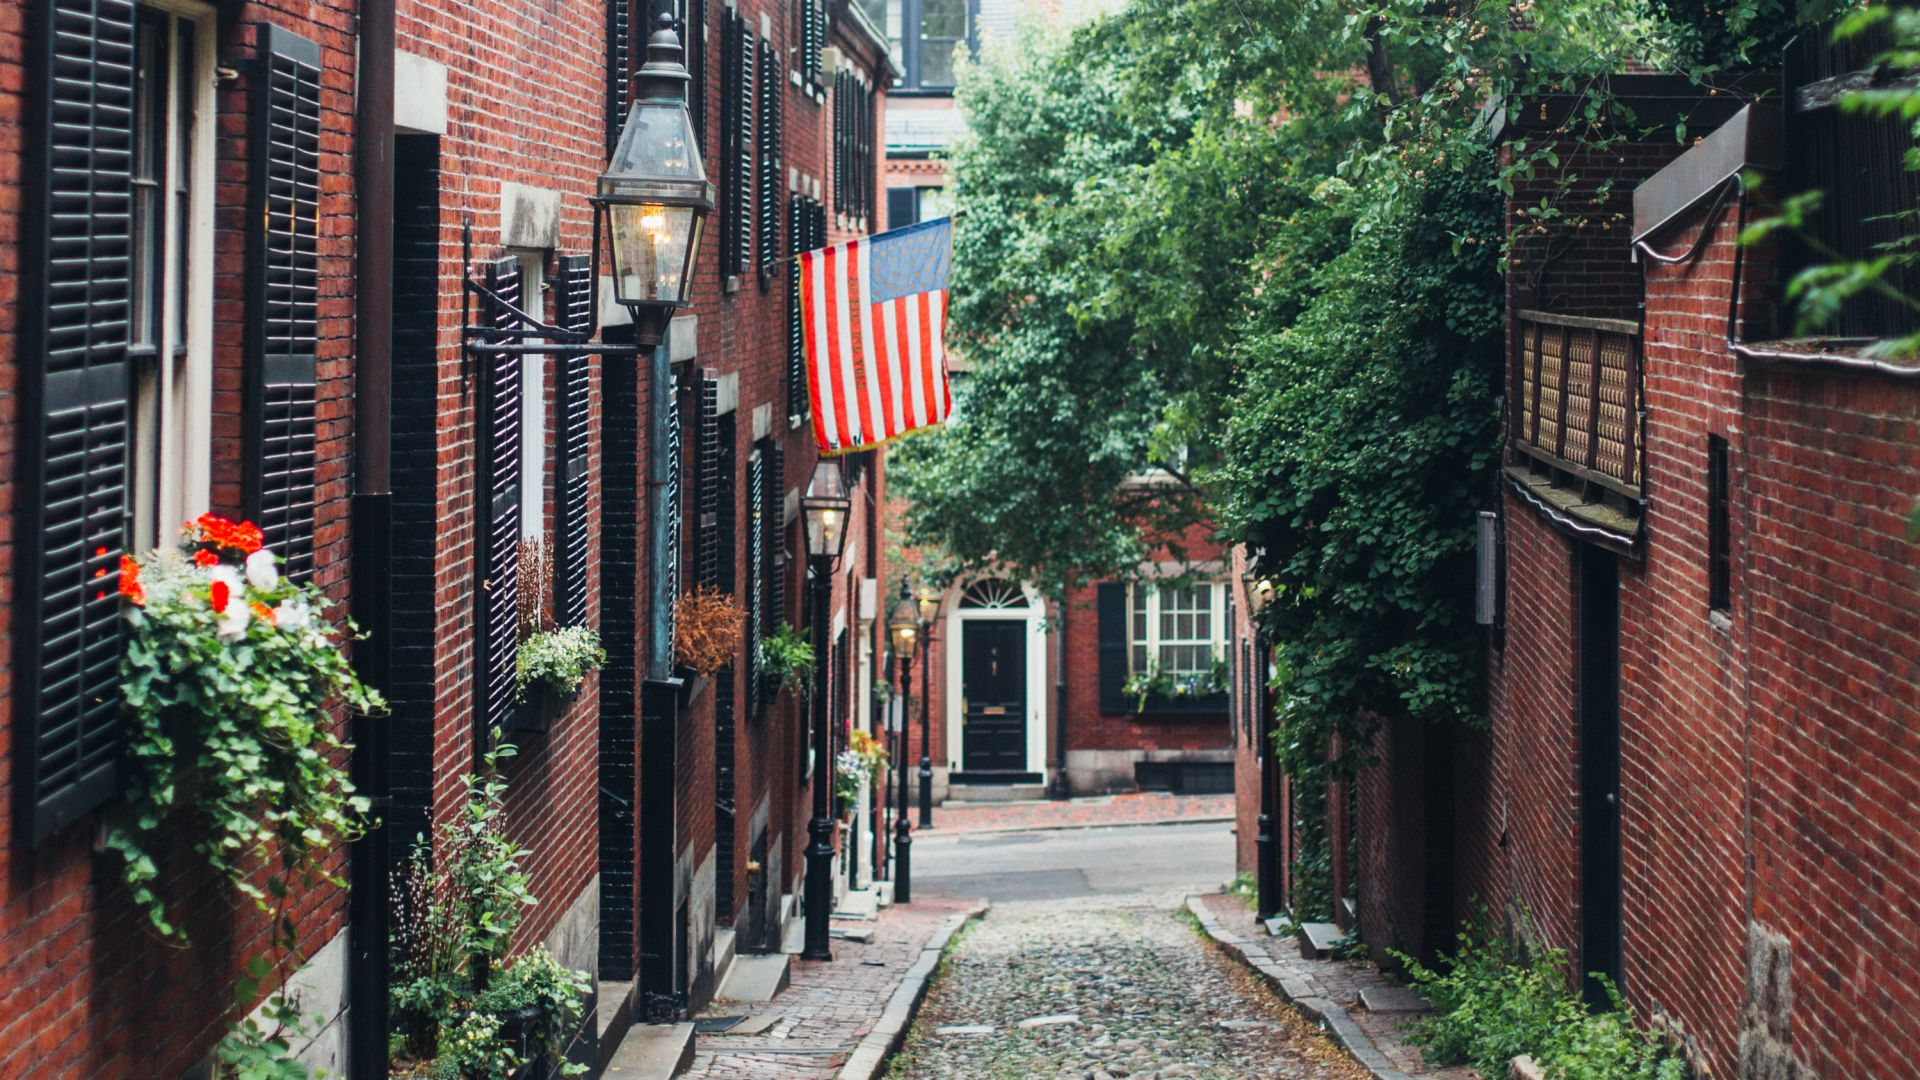 Boston cobble stone streets